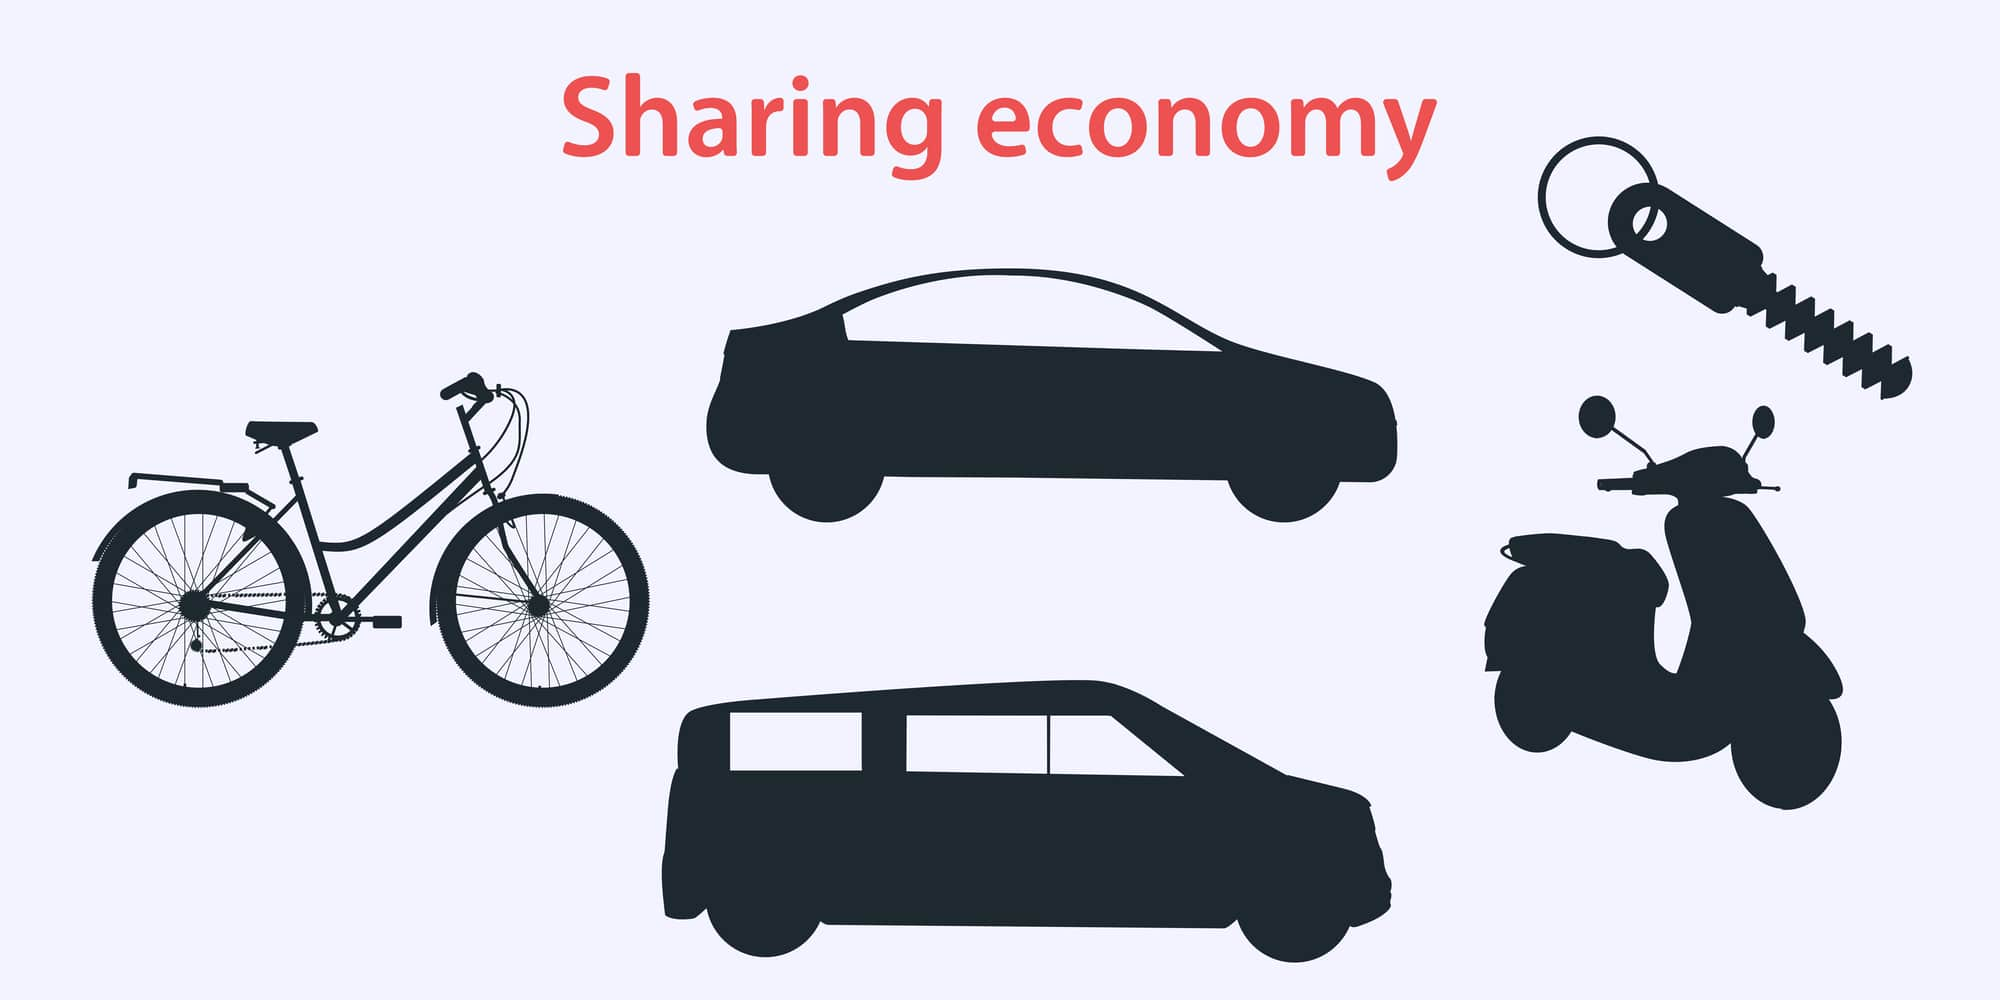 Charters, coliving, cars: how subscription services became the new norm and changed our lives